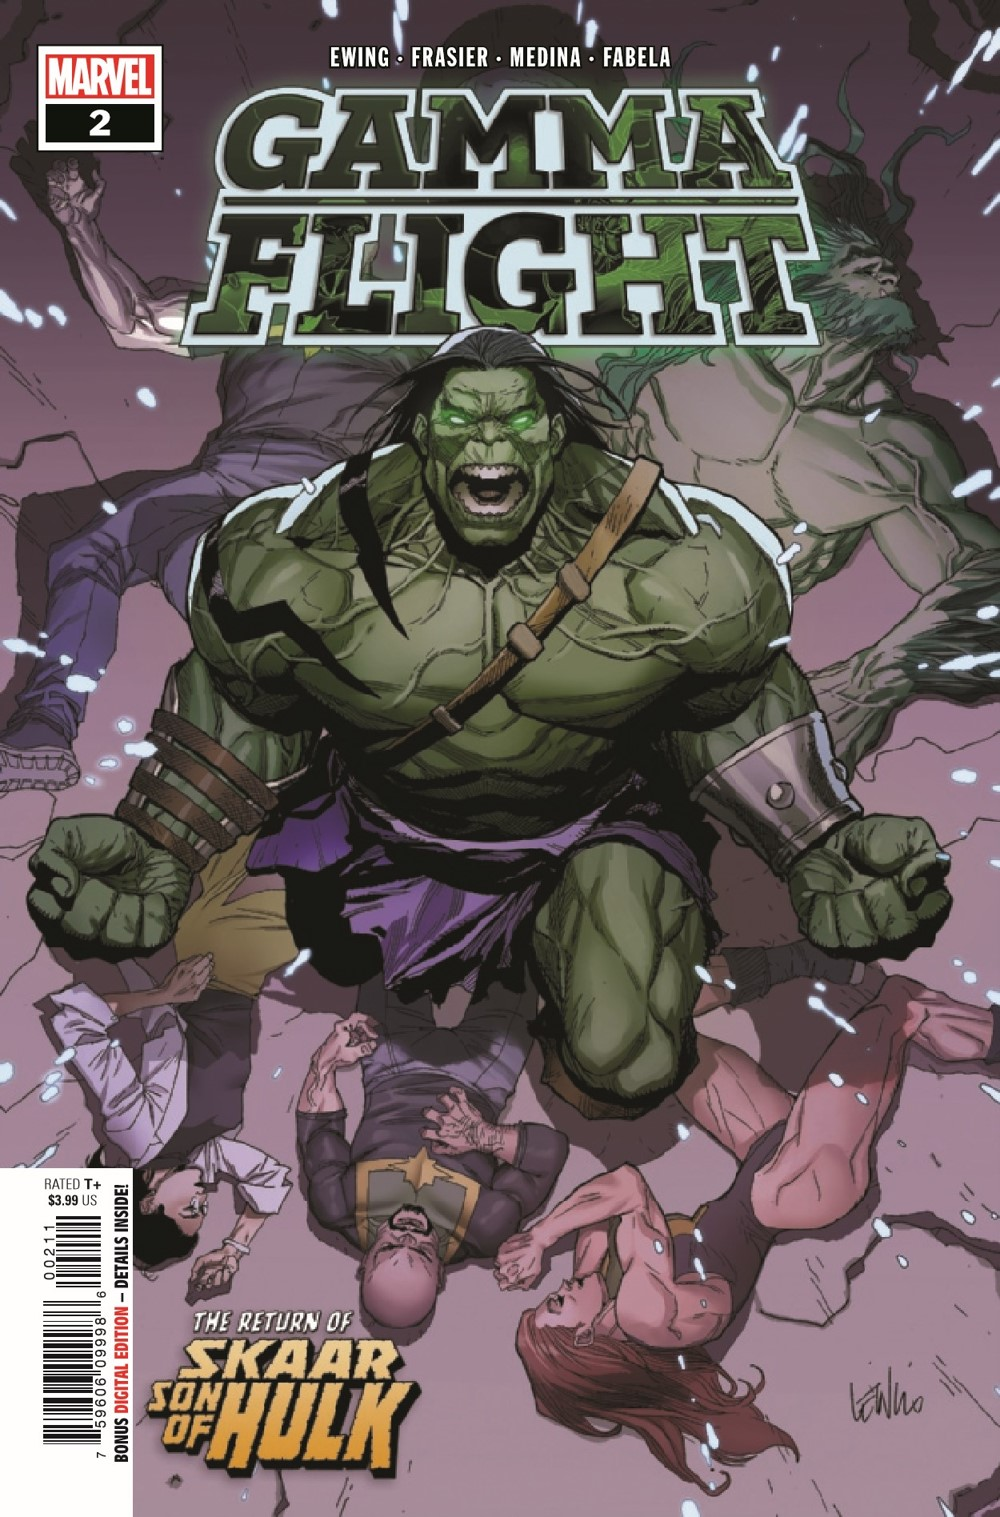 GAMMAF2021002_Preview-1 ComicList: Marvel Comics New Releases for 07/21/2021